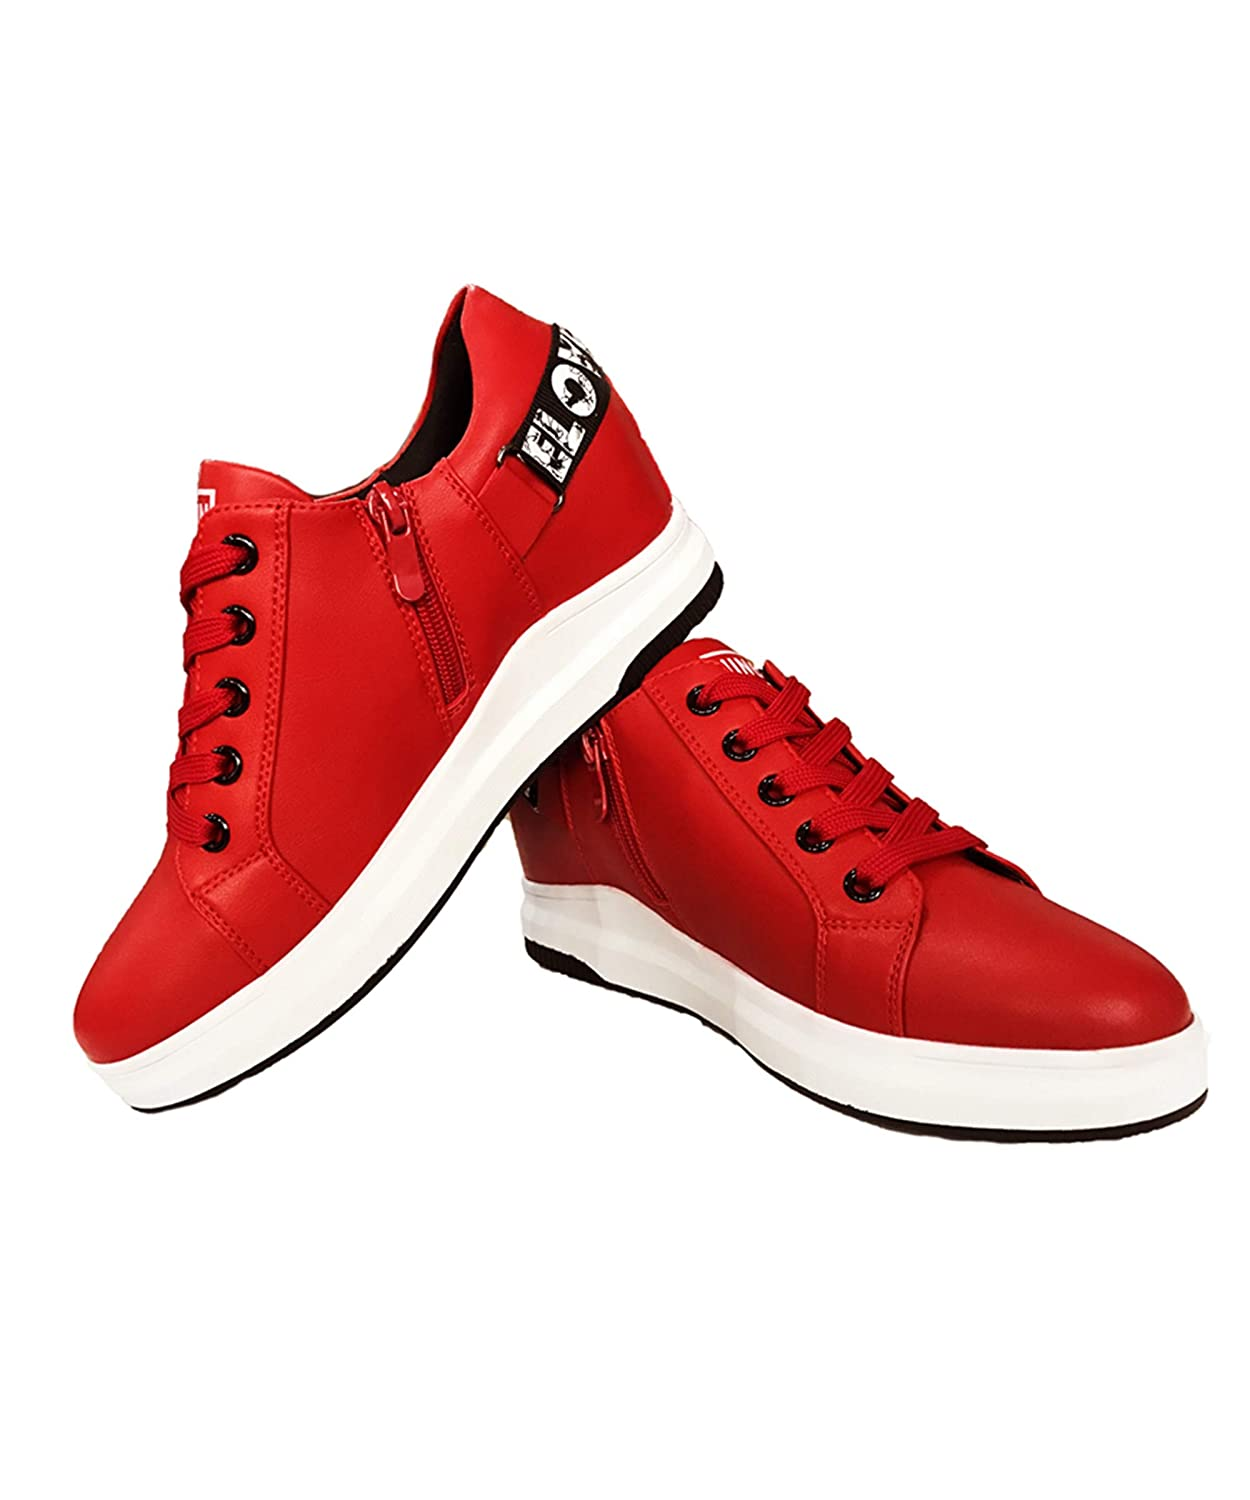 Red Hotroad Women's Wedge shoes Sneakers Low-Top